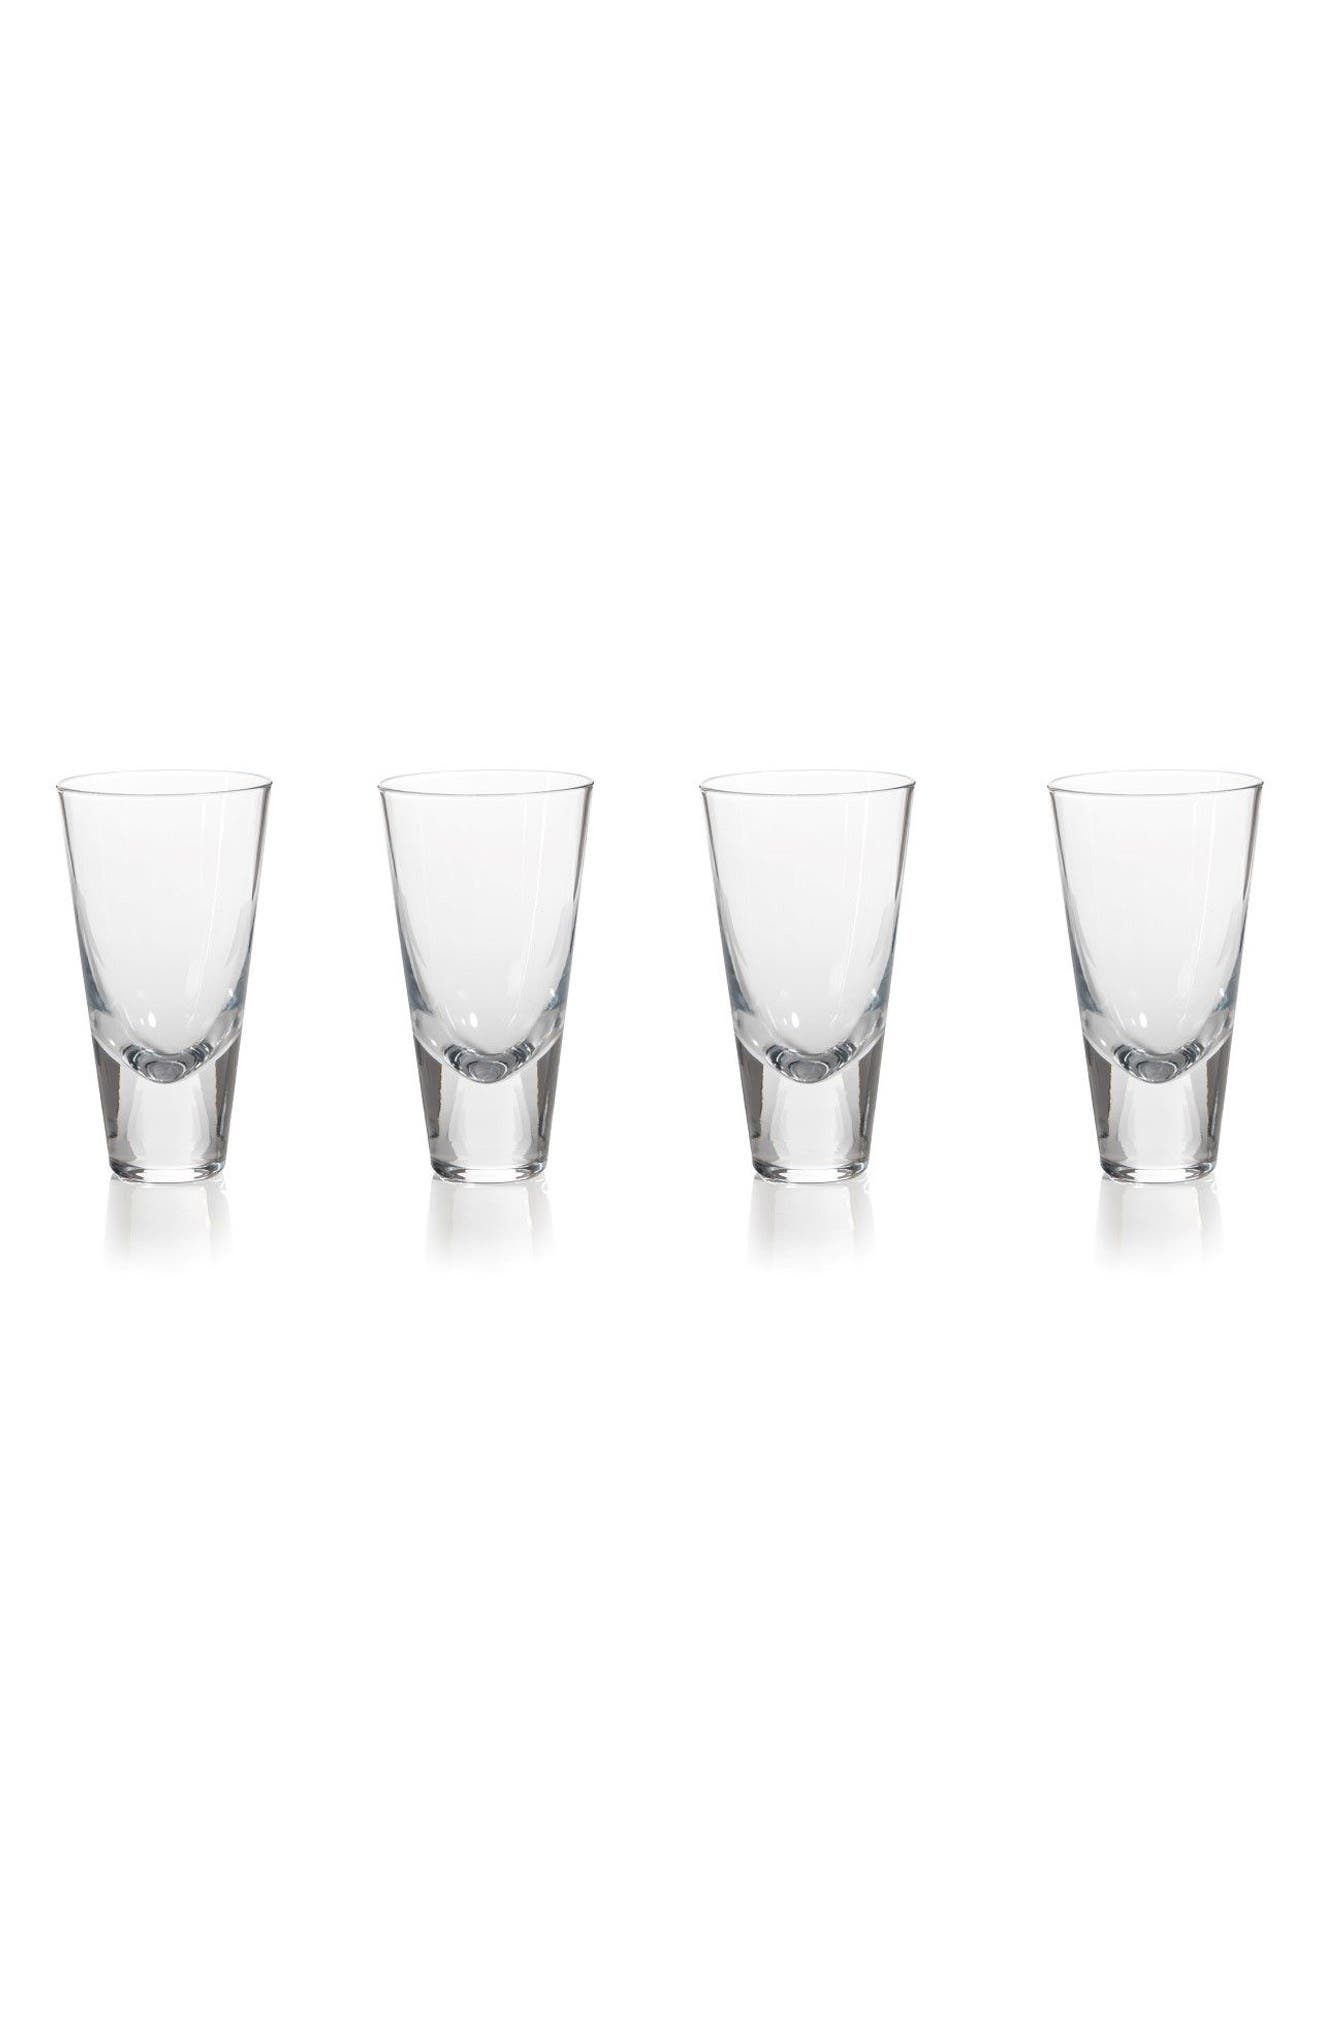 Anatole Set of 4 Drinking Glasses,                             Main thumbnail 1, color,                             100